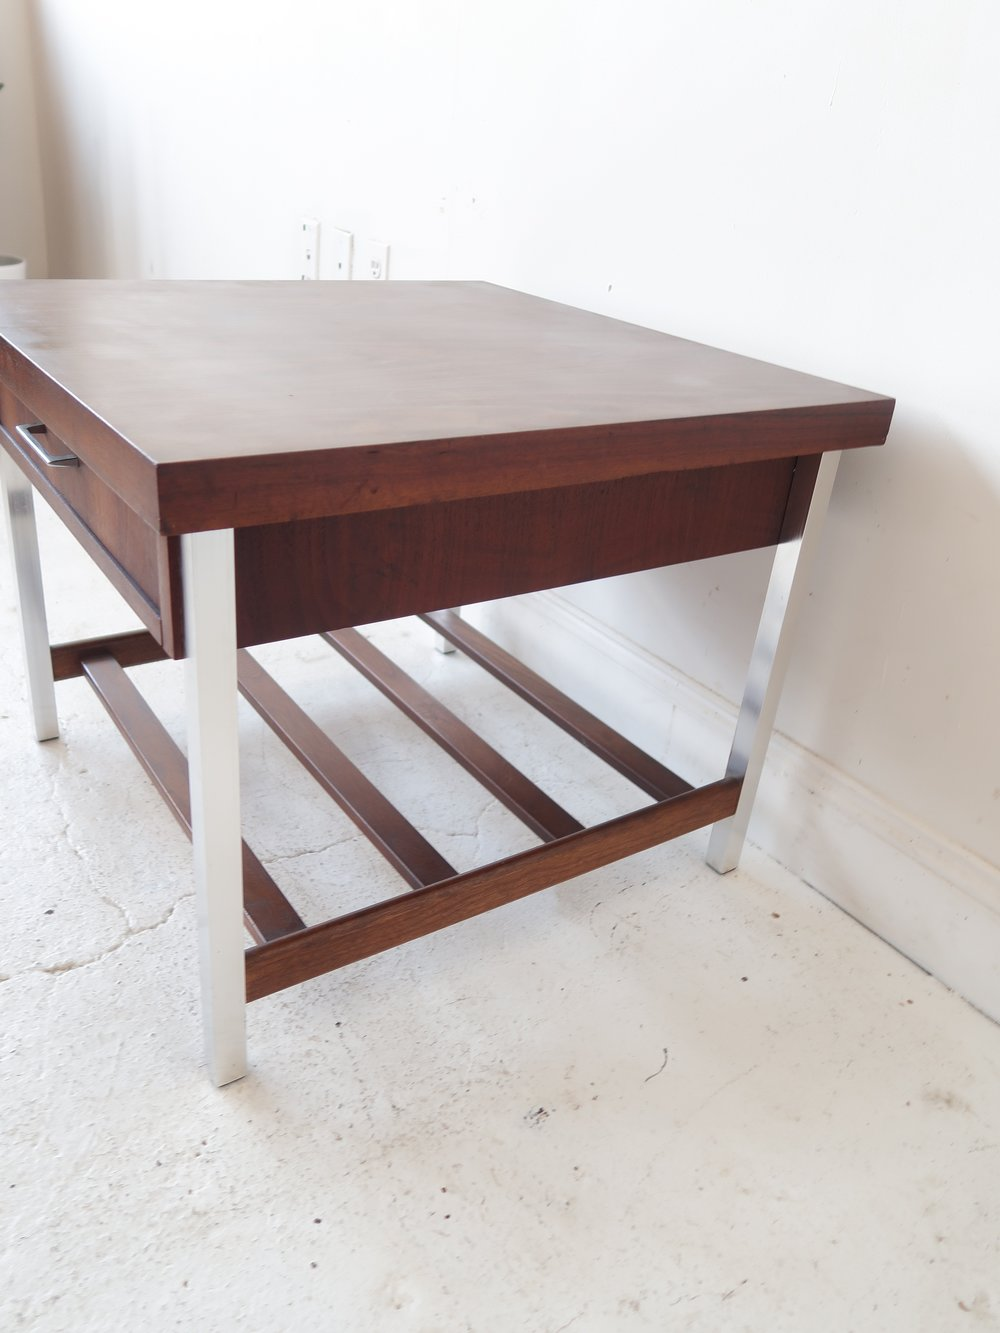 Vintage Mid Century Modern End Table With Chrome Legs